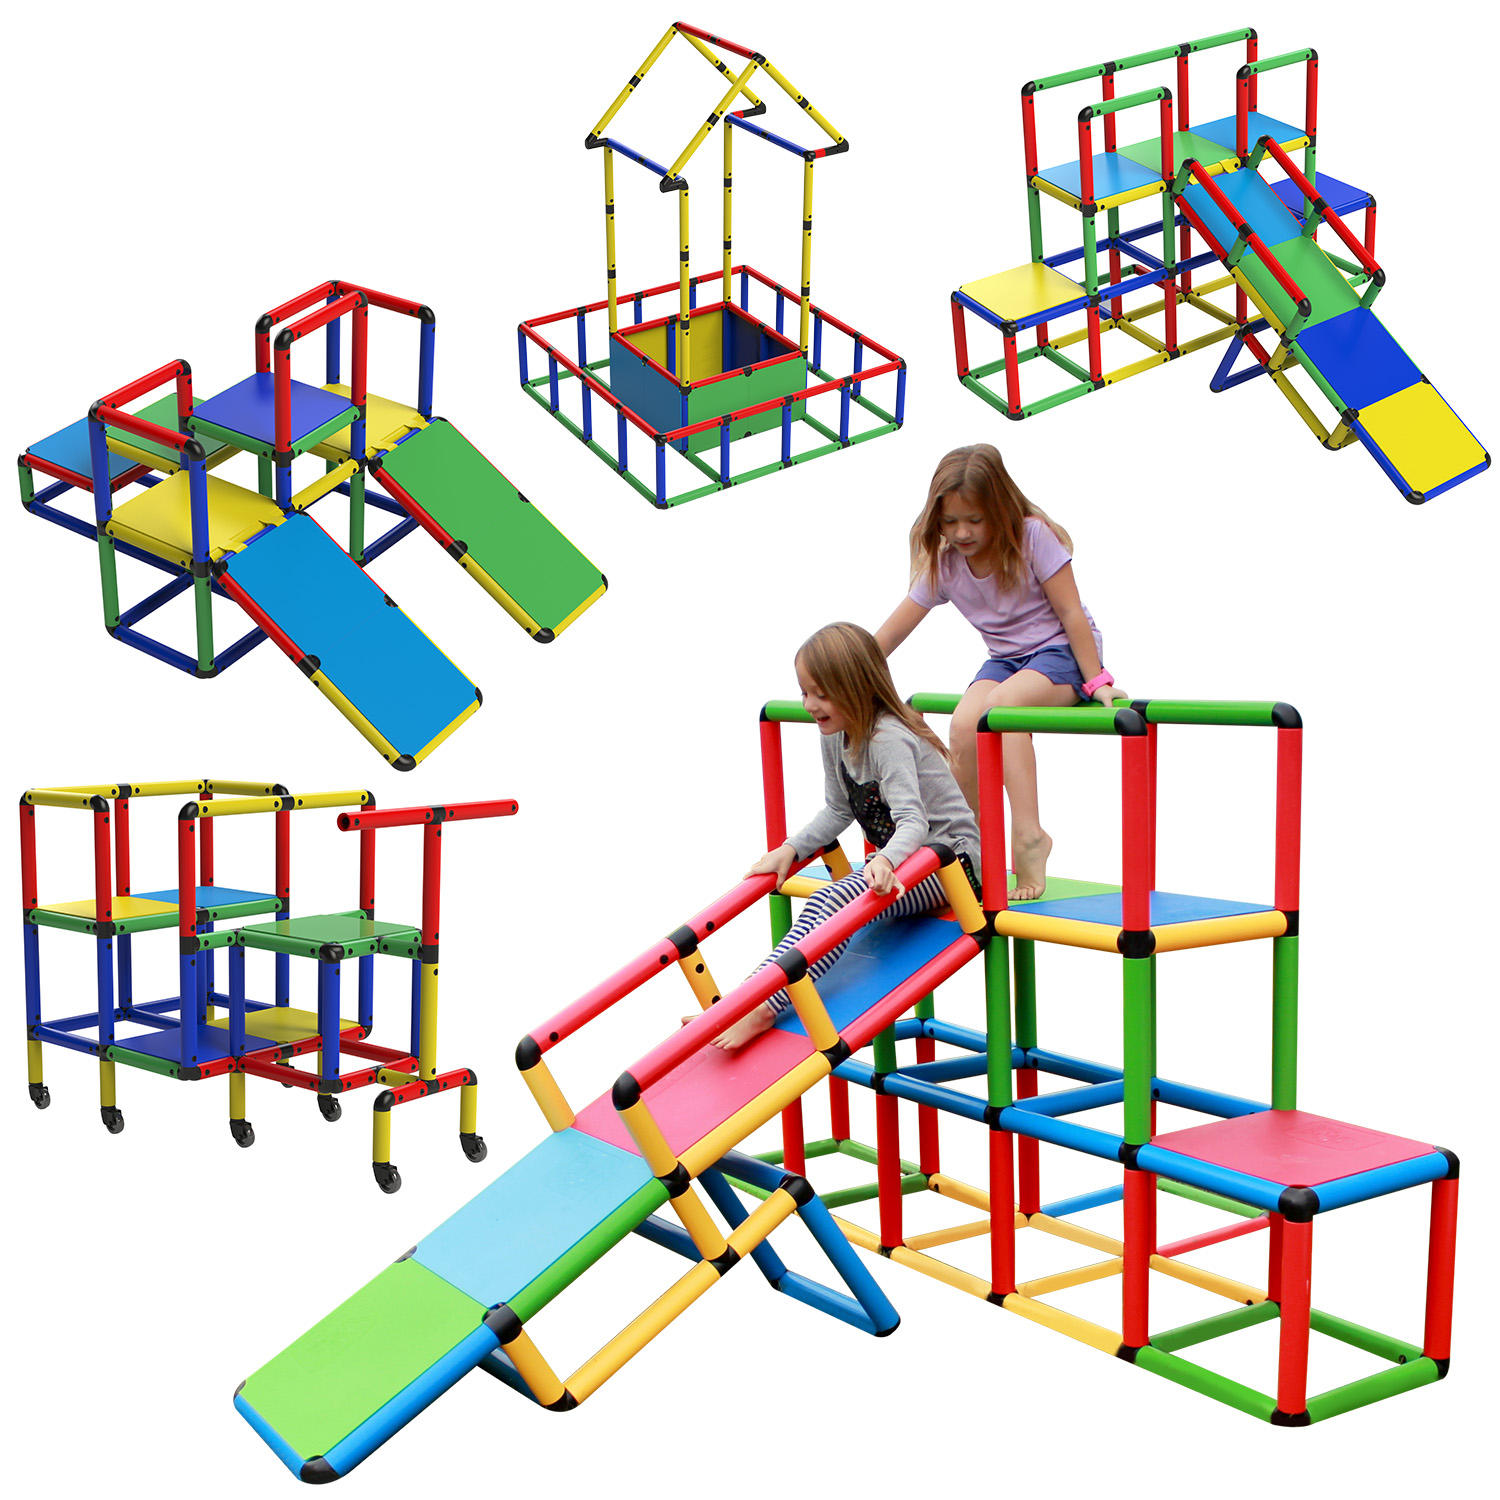 Funphix Create and Play Life Size Structures, The All-in-1